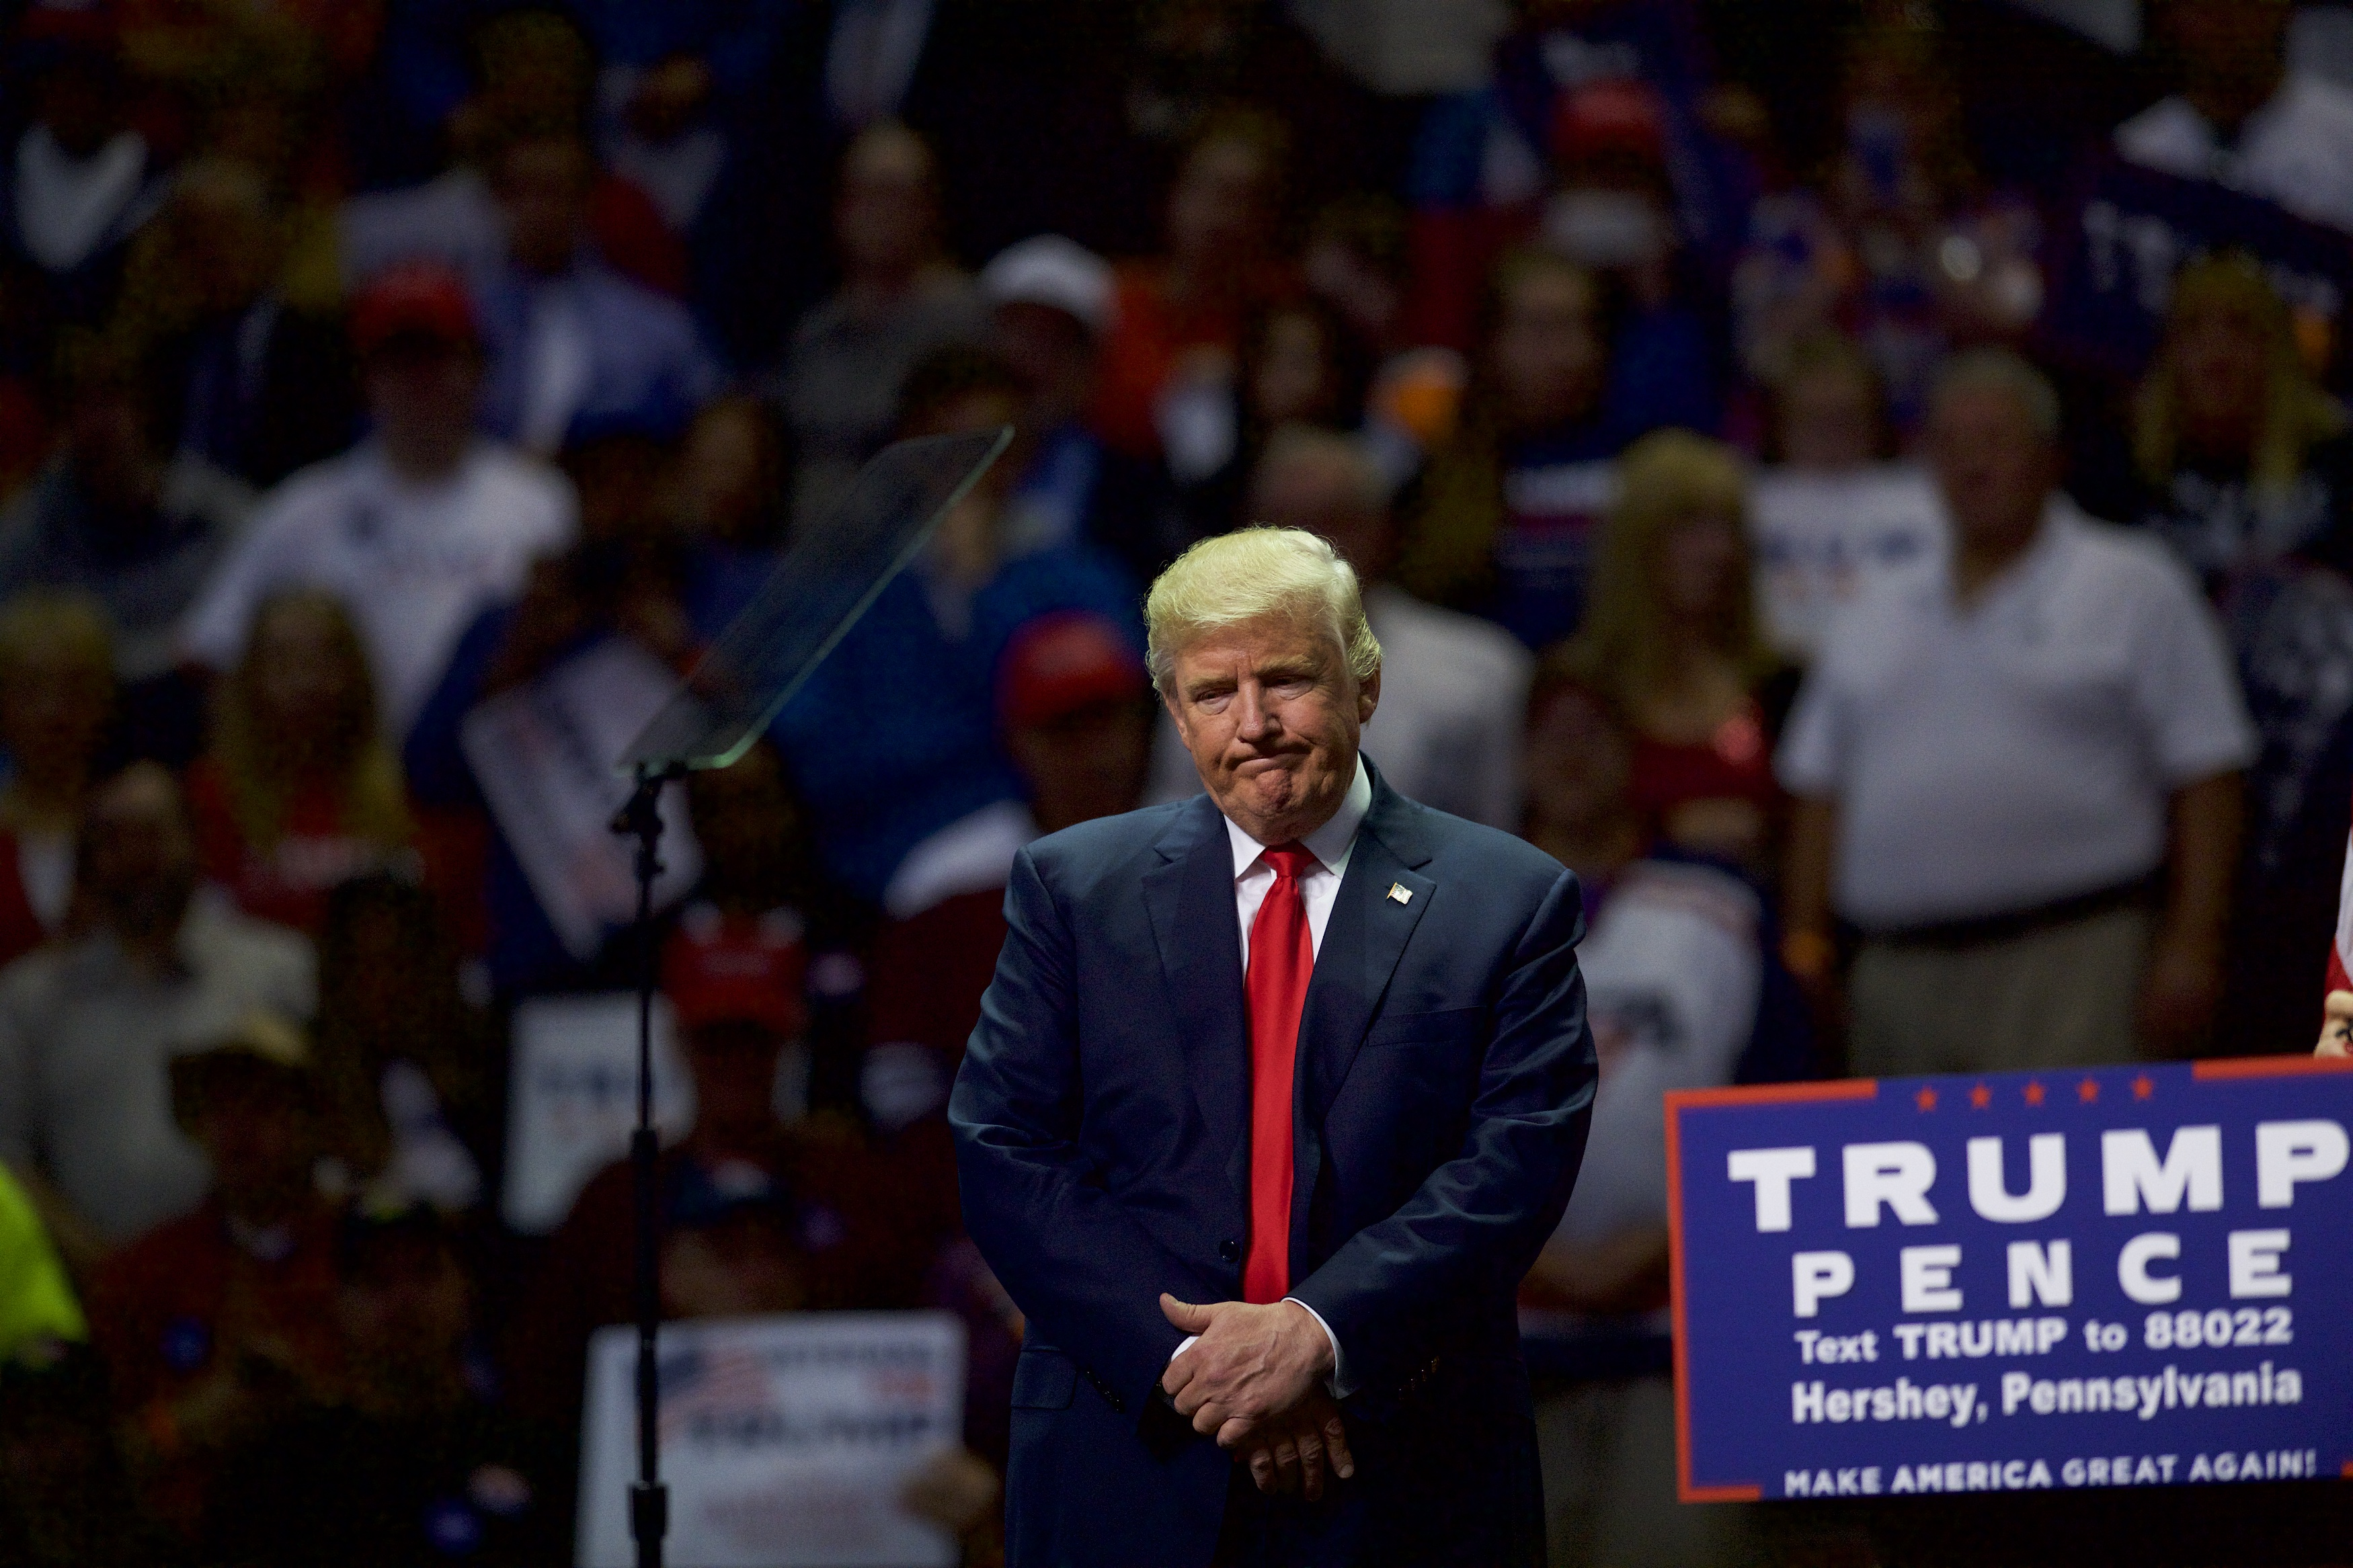 Donald Trump holds a rally in Hershey, Pennsylvania, in 2016.